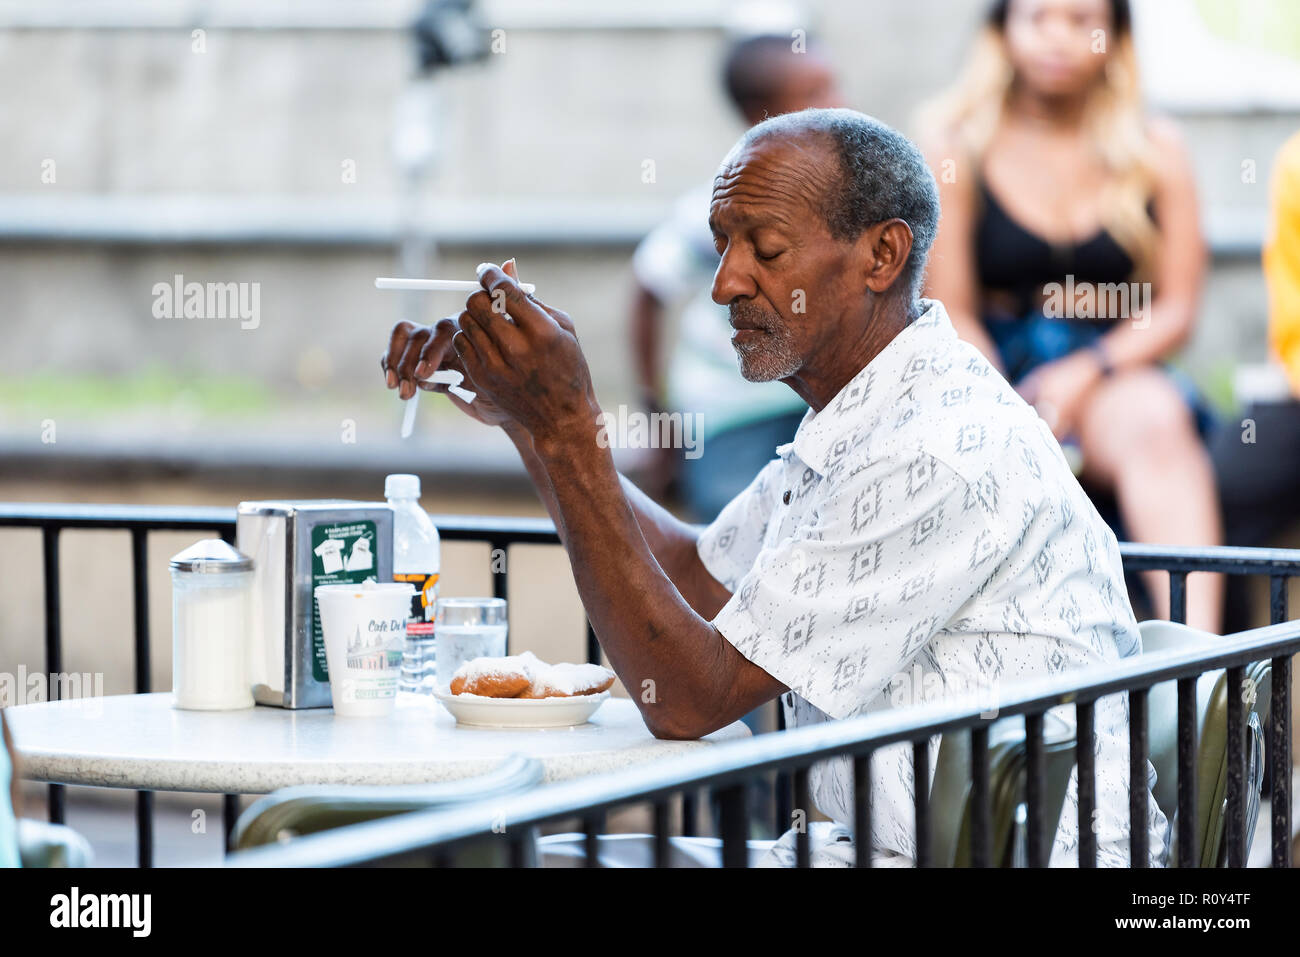 New Orleans, USA - April 22, 2018: Man sitting at table at famous, iconic Cafe Du Monde shop, restaurant eating beignet powdered sugar donuts, coffee, Stock Photo